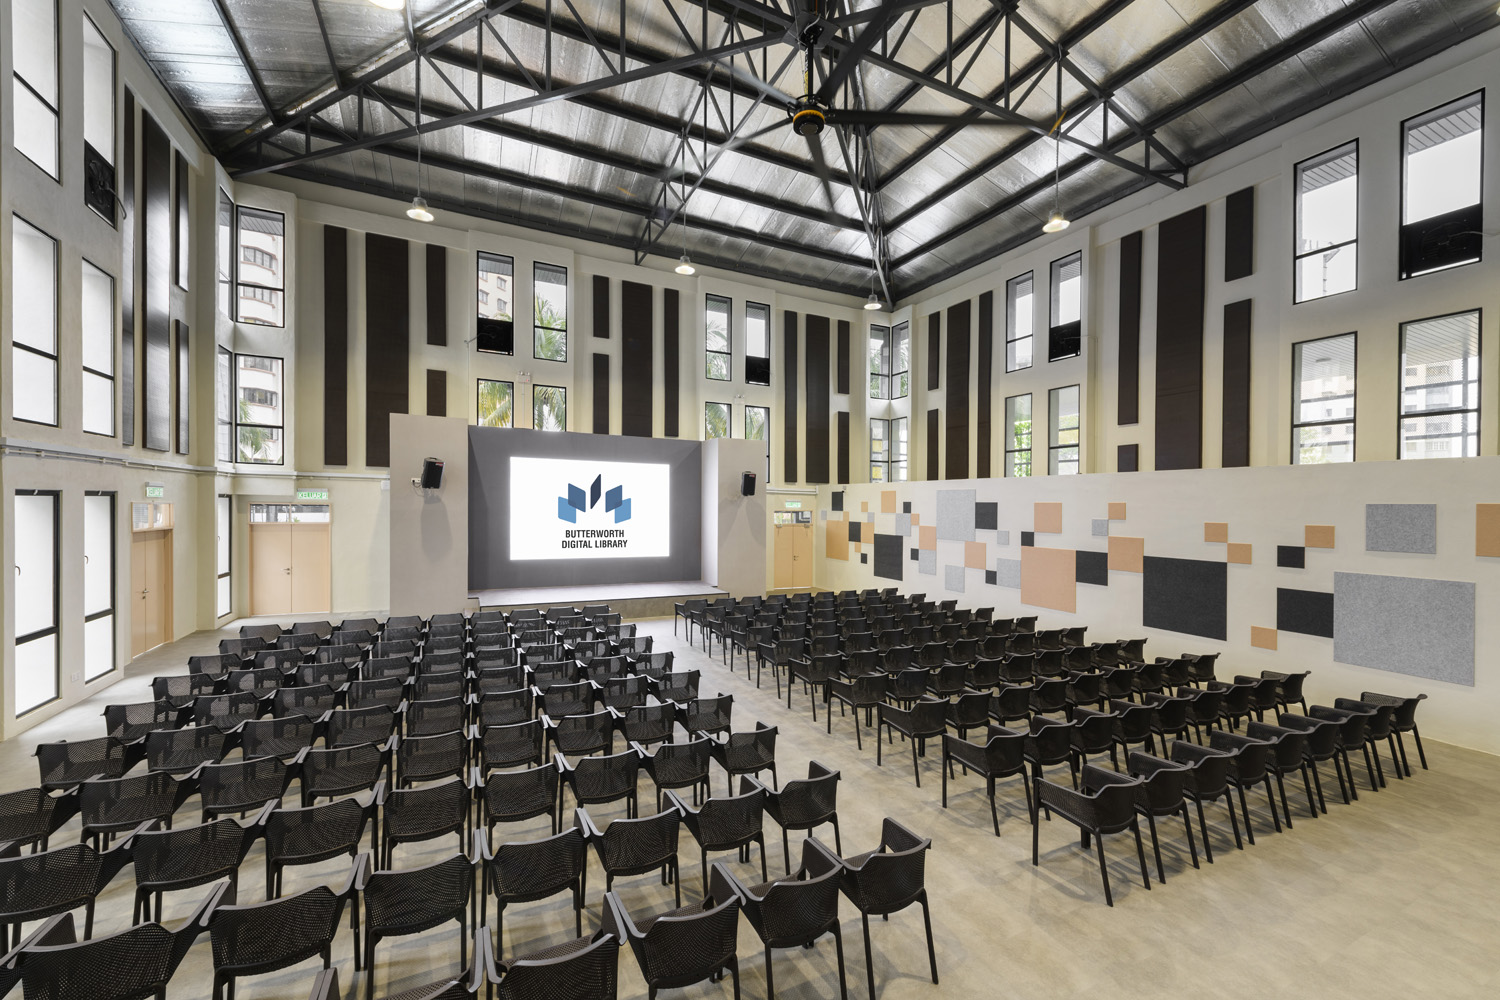 The former badminton court has been transformed into a multipurpose event space